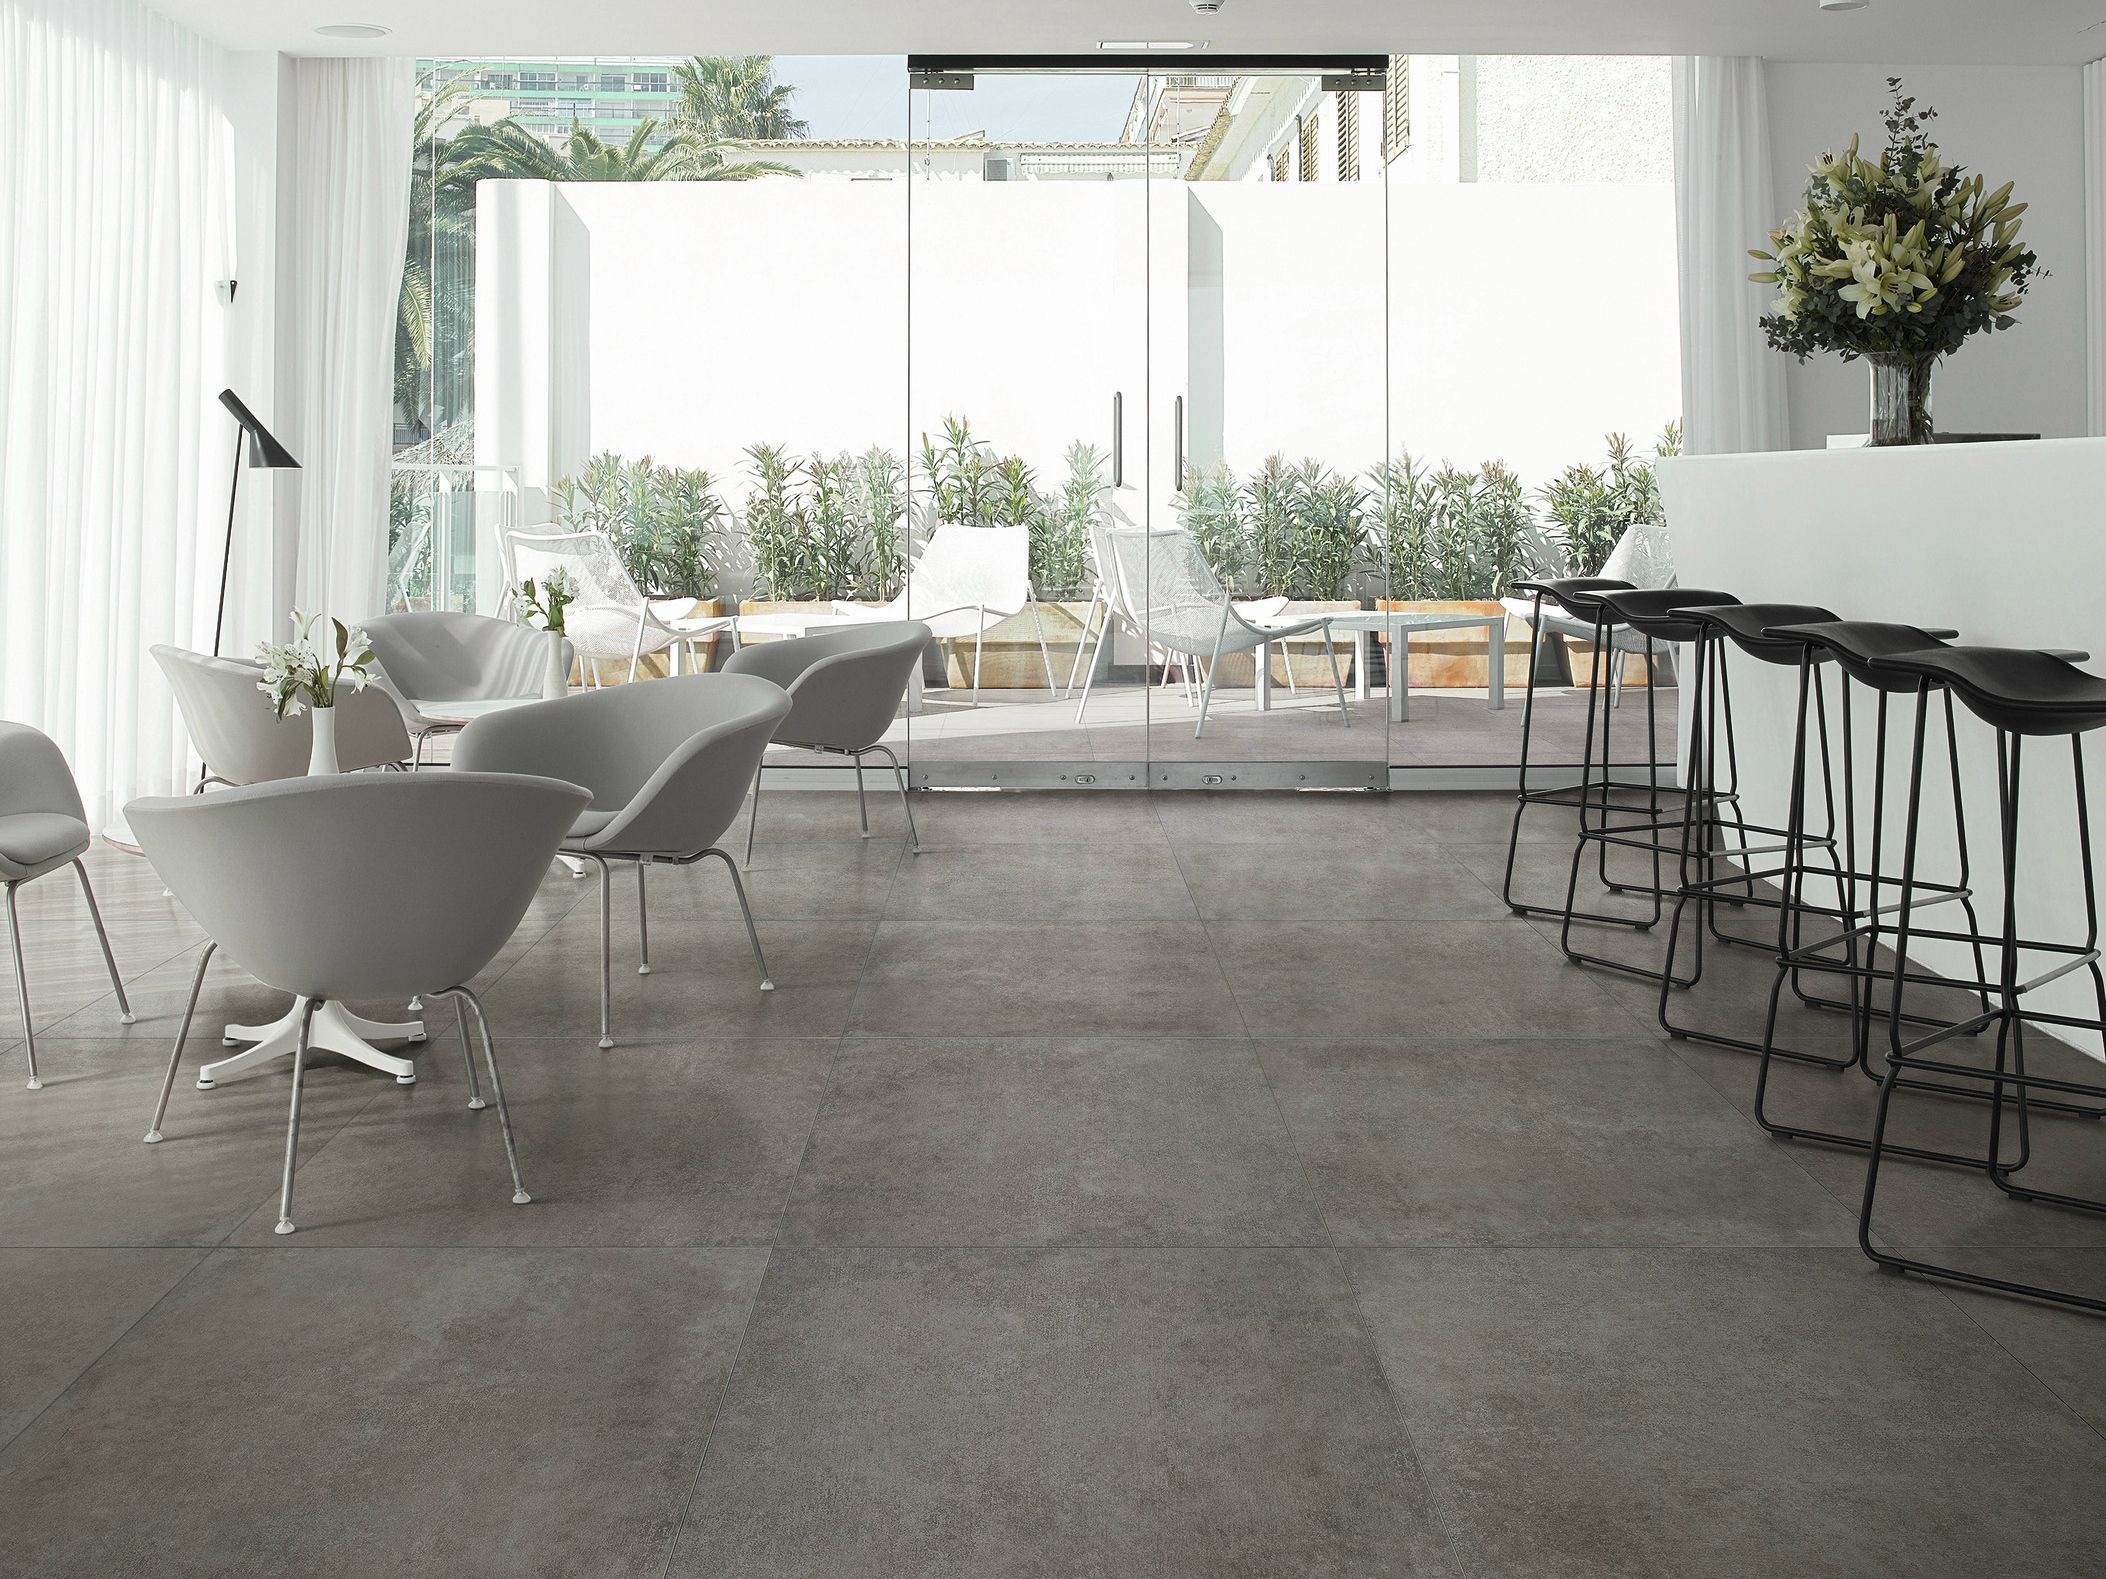 Porcelain stoneware wallfloor tiles with concrete effect memories porcelain stoneware wallfloor tiles with concrete effect memories by ceramica santagostino dailygadgetfo Image collections